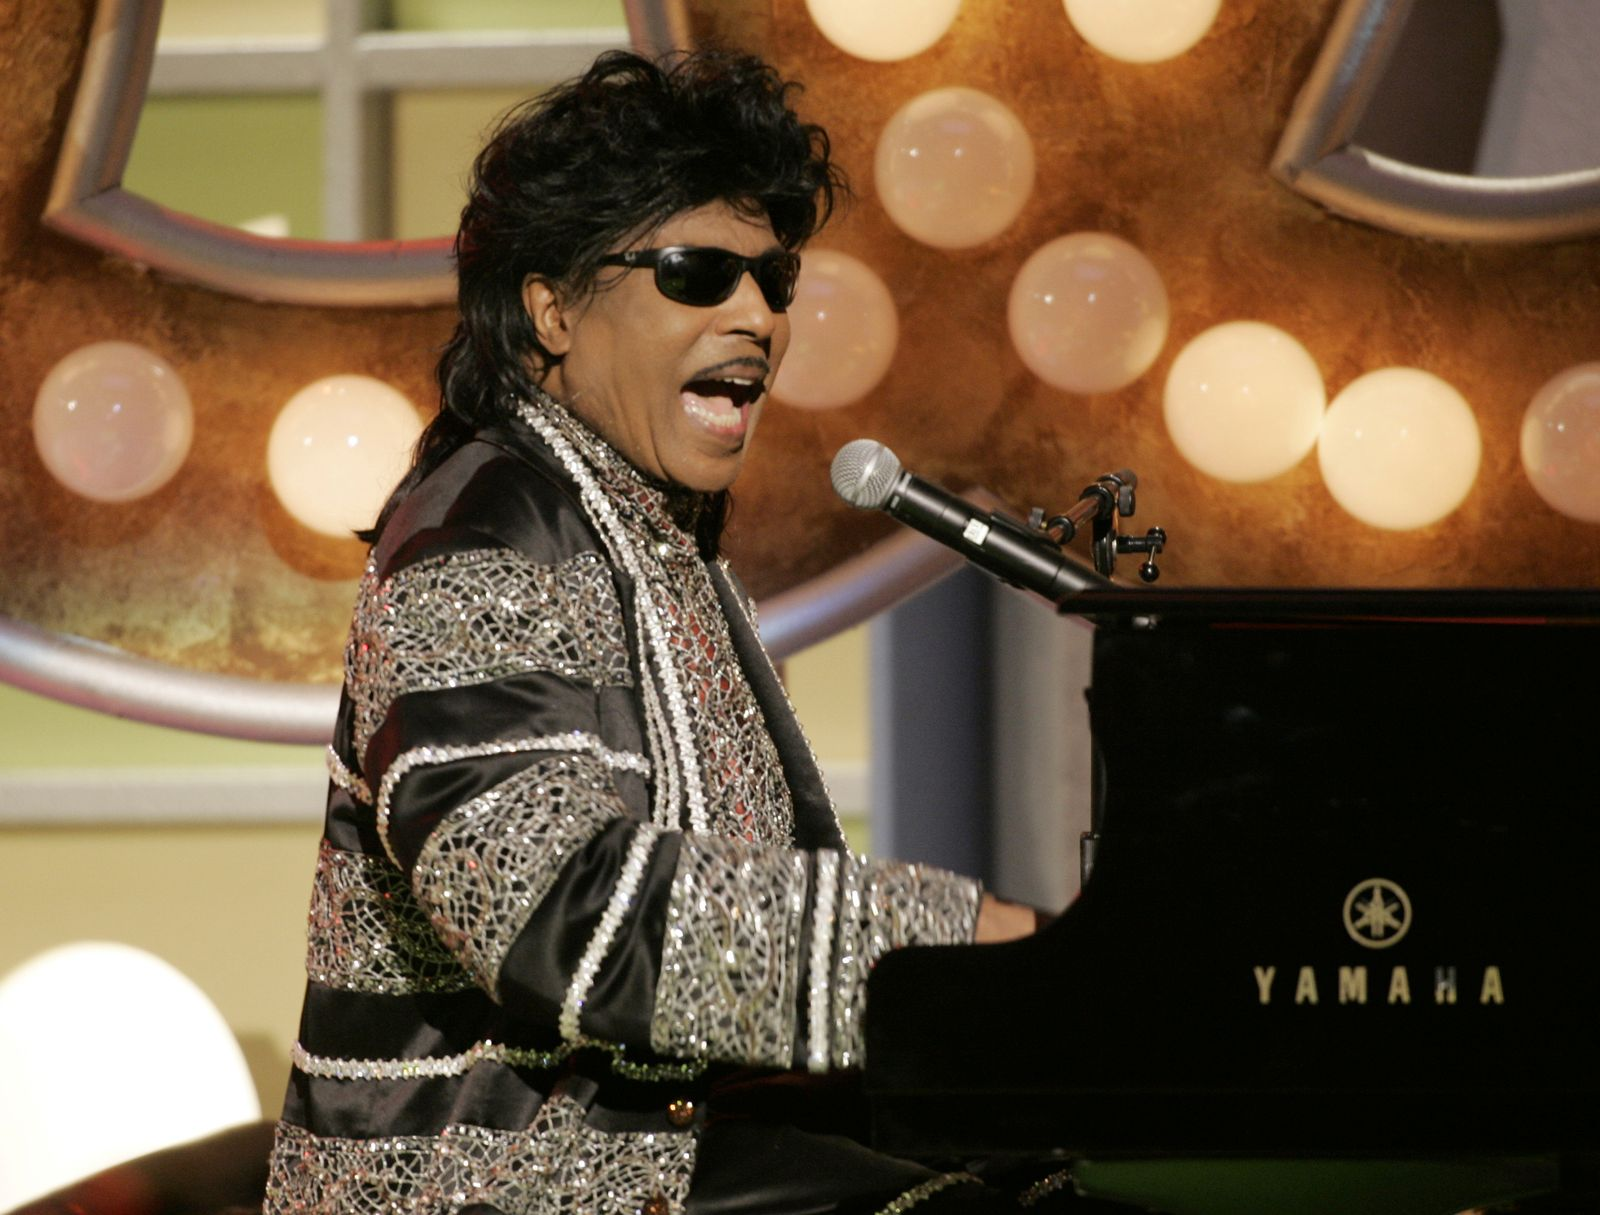 FILE PHOTO: Singer Little Richard performs at 3rd annual TV Land Awards show.